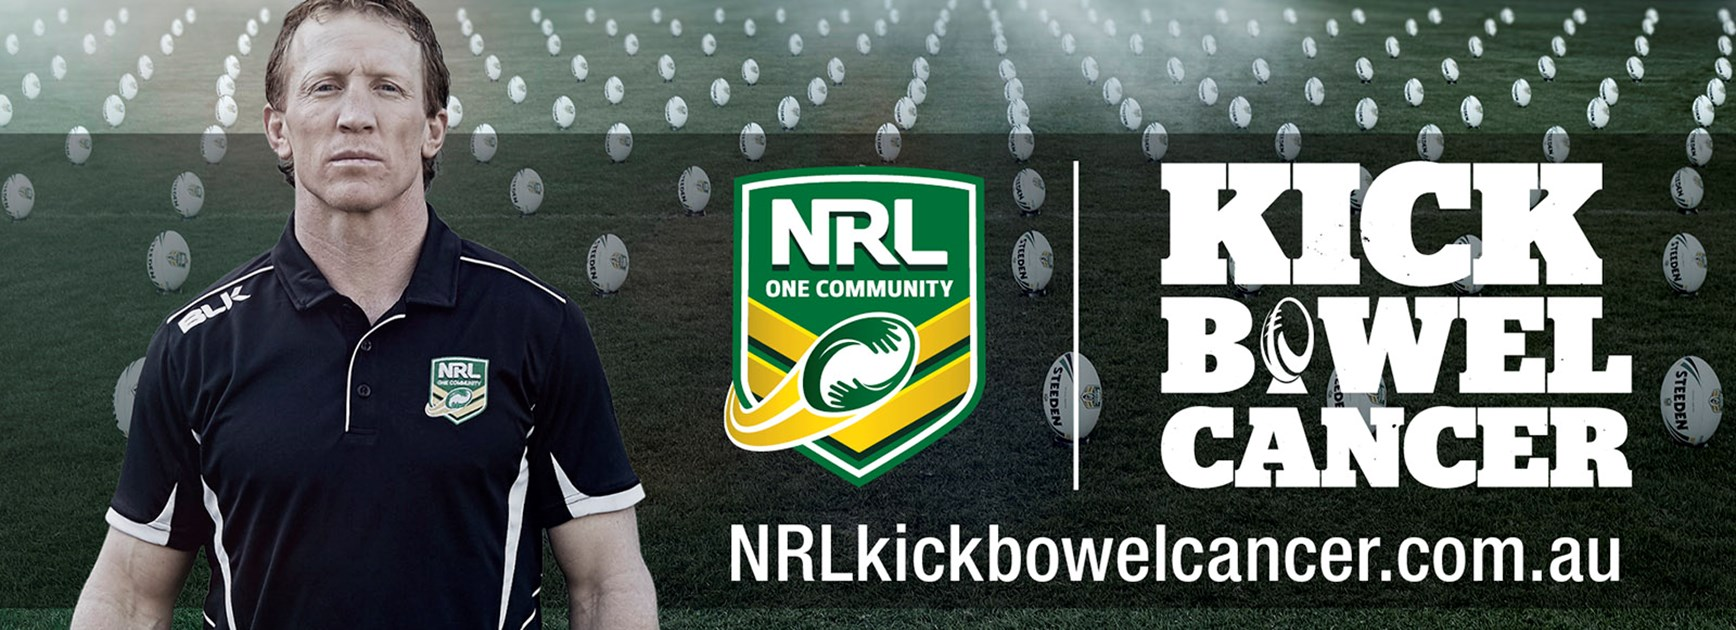 Former Canberra Raiders captain Alan Tongue is an ambassador for NRL Kick Bowel Cancer.